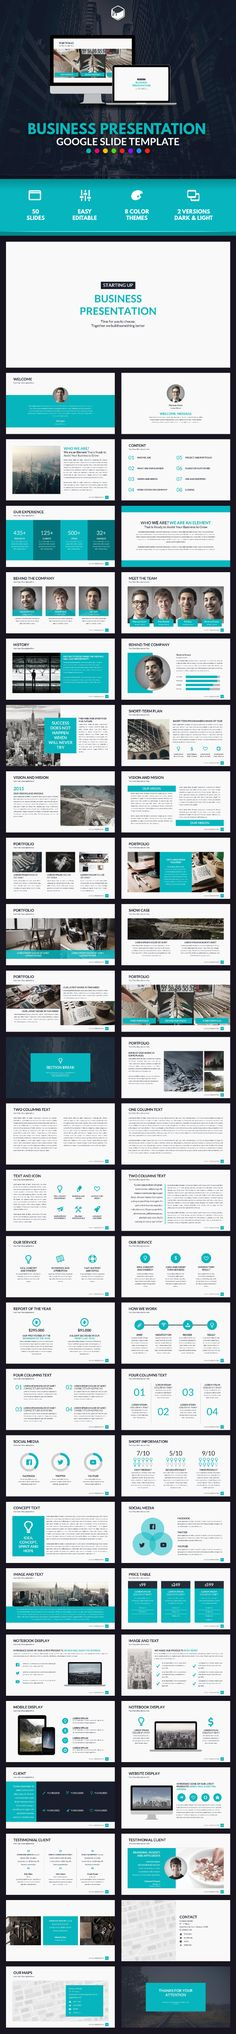 Business Presentation Google Slides Template #design Download: http://graphicriver.net/item/business-presentation-google-slide-template/13610801?ref=ksioks